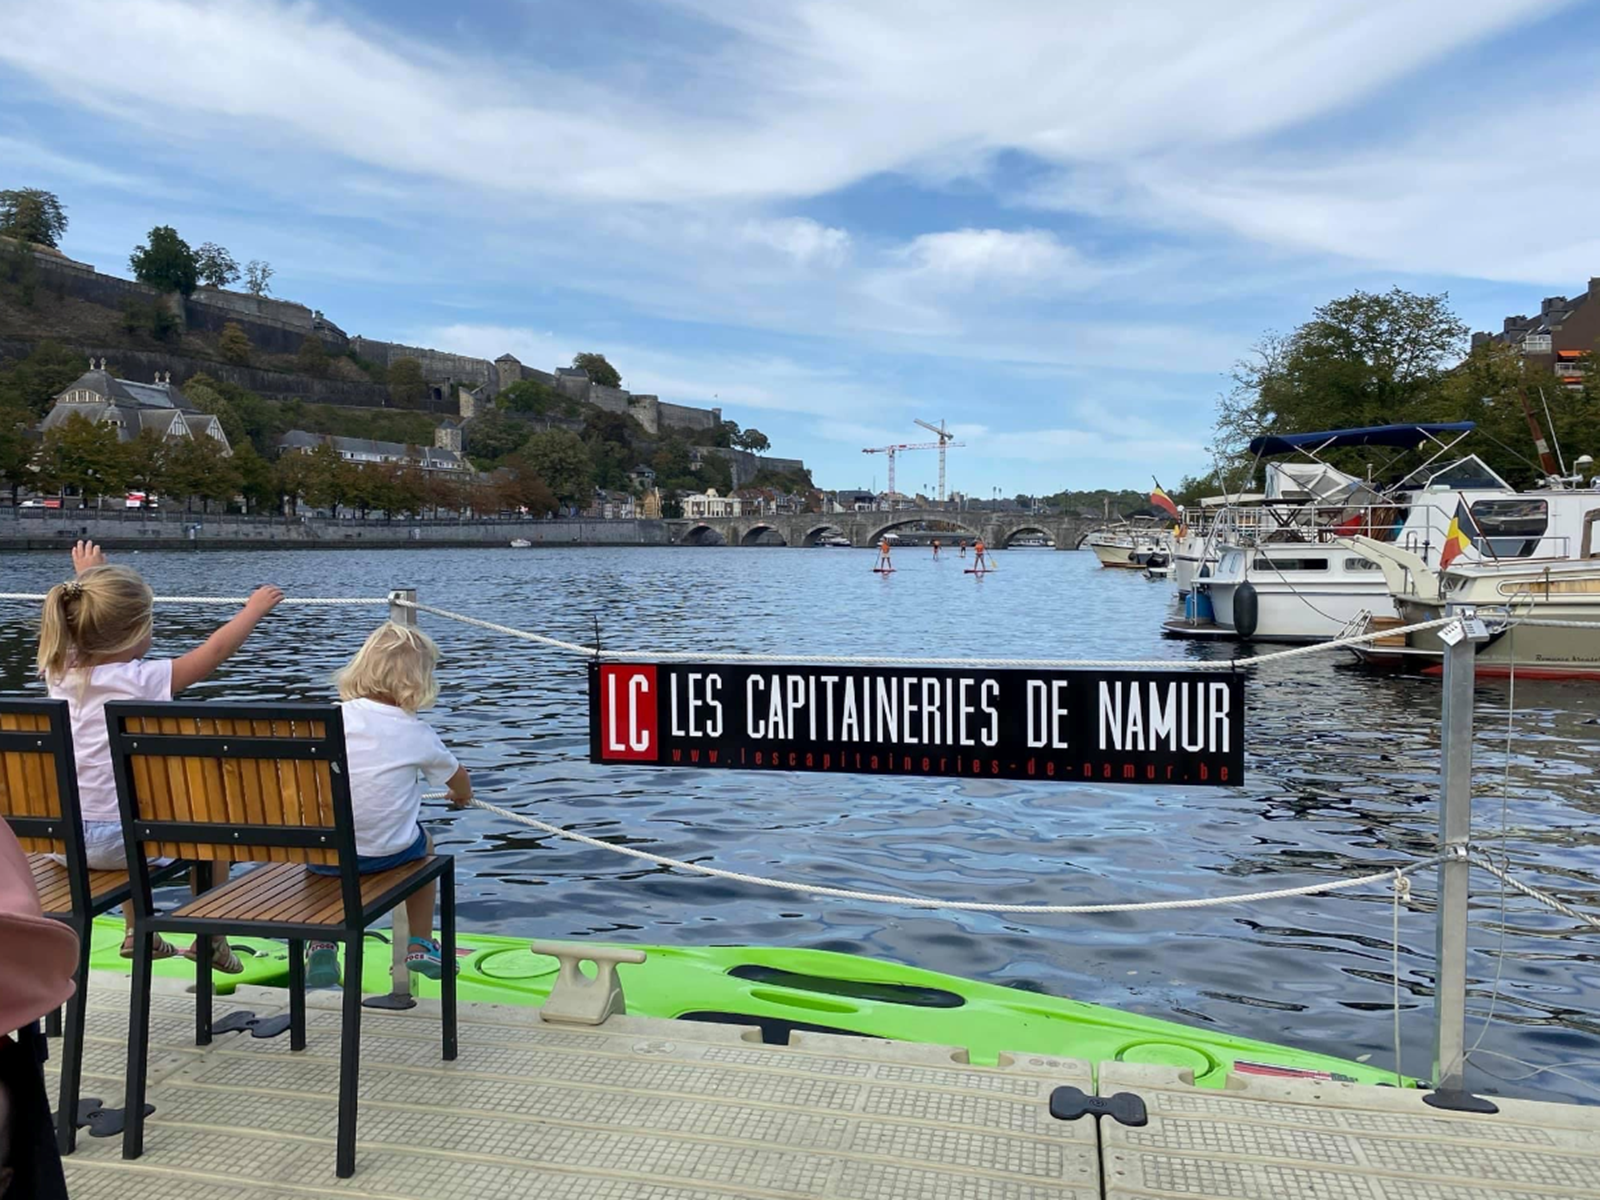 Les Capitaineries de Namur